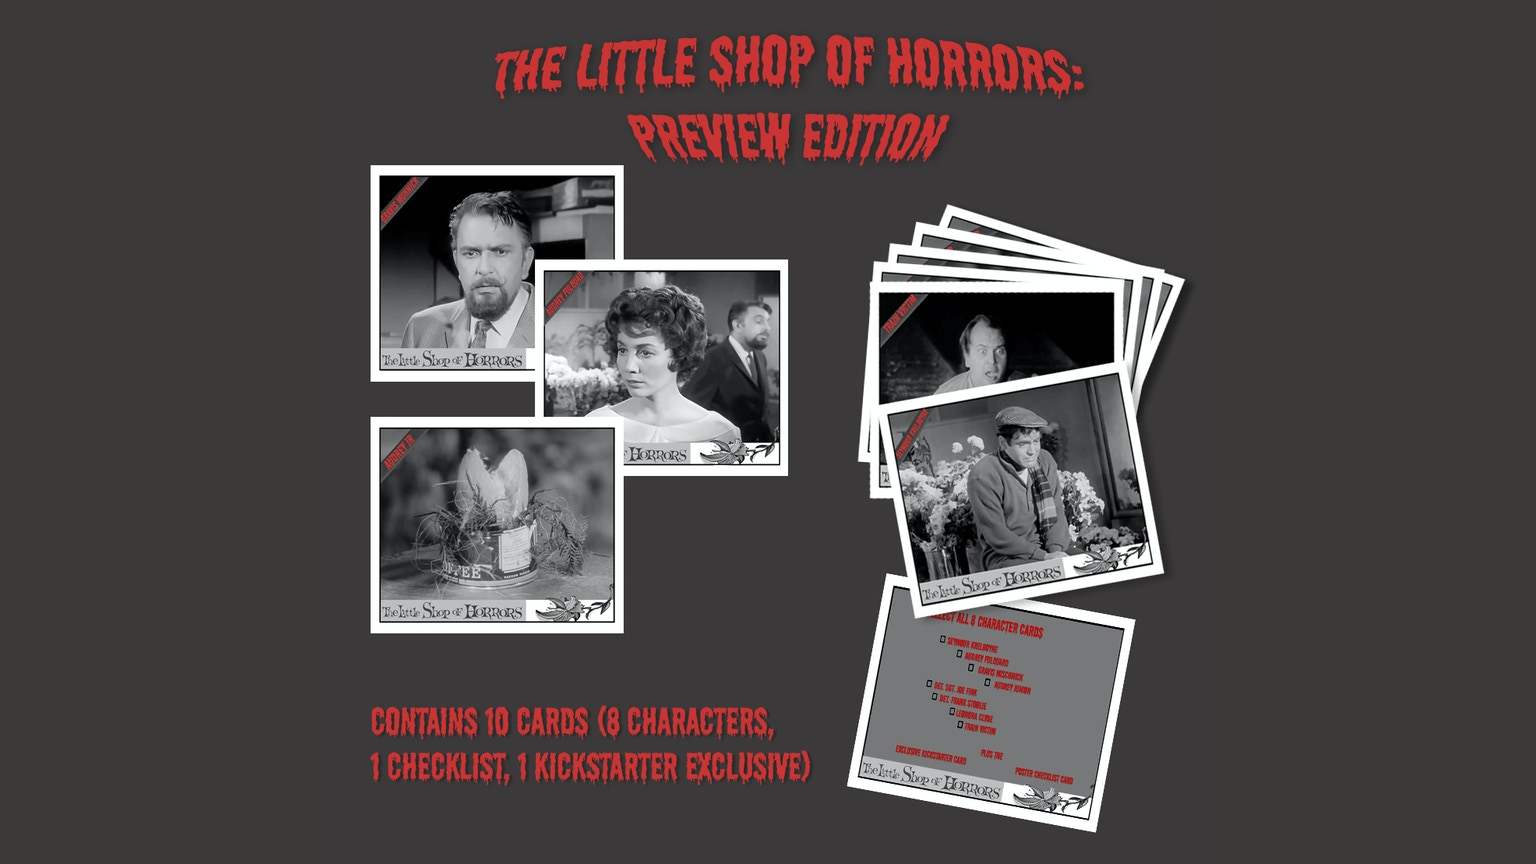 The Little Shop Of Horrors Trading Cards Preview Edition